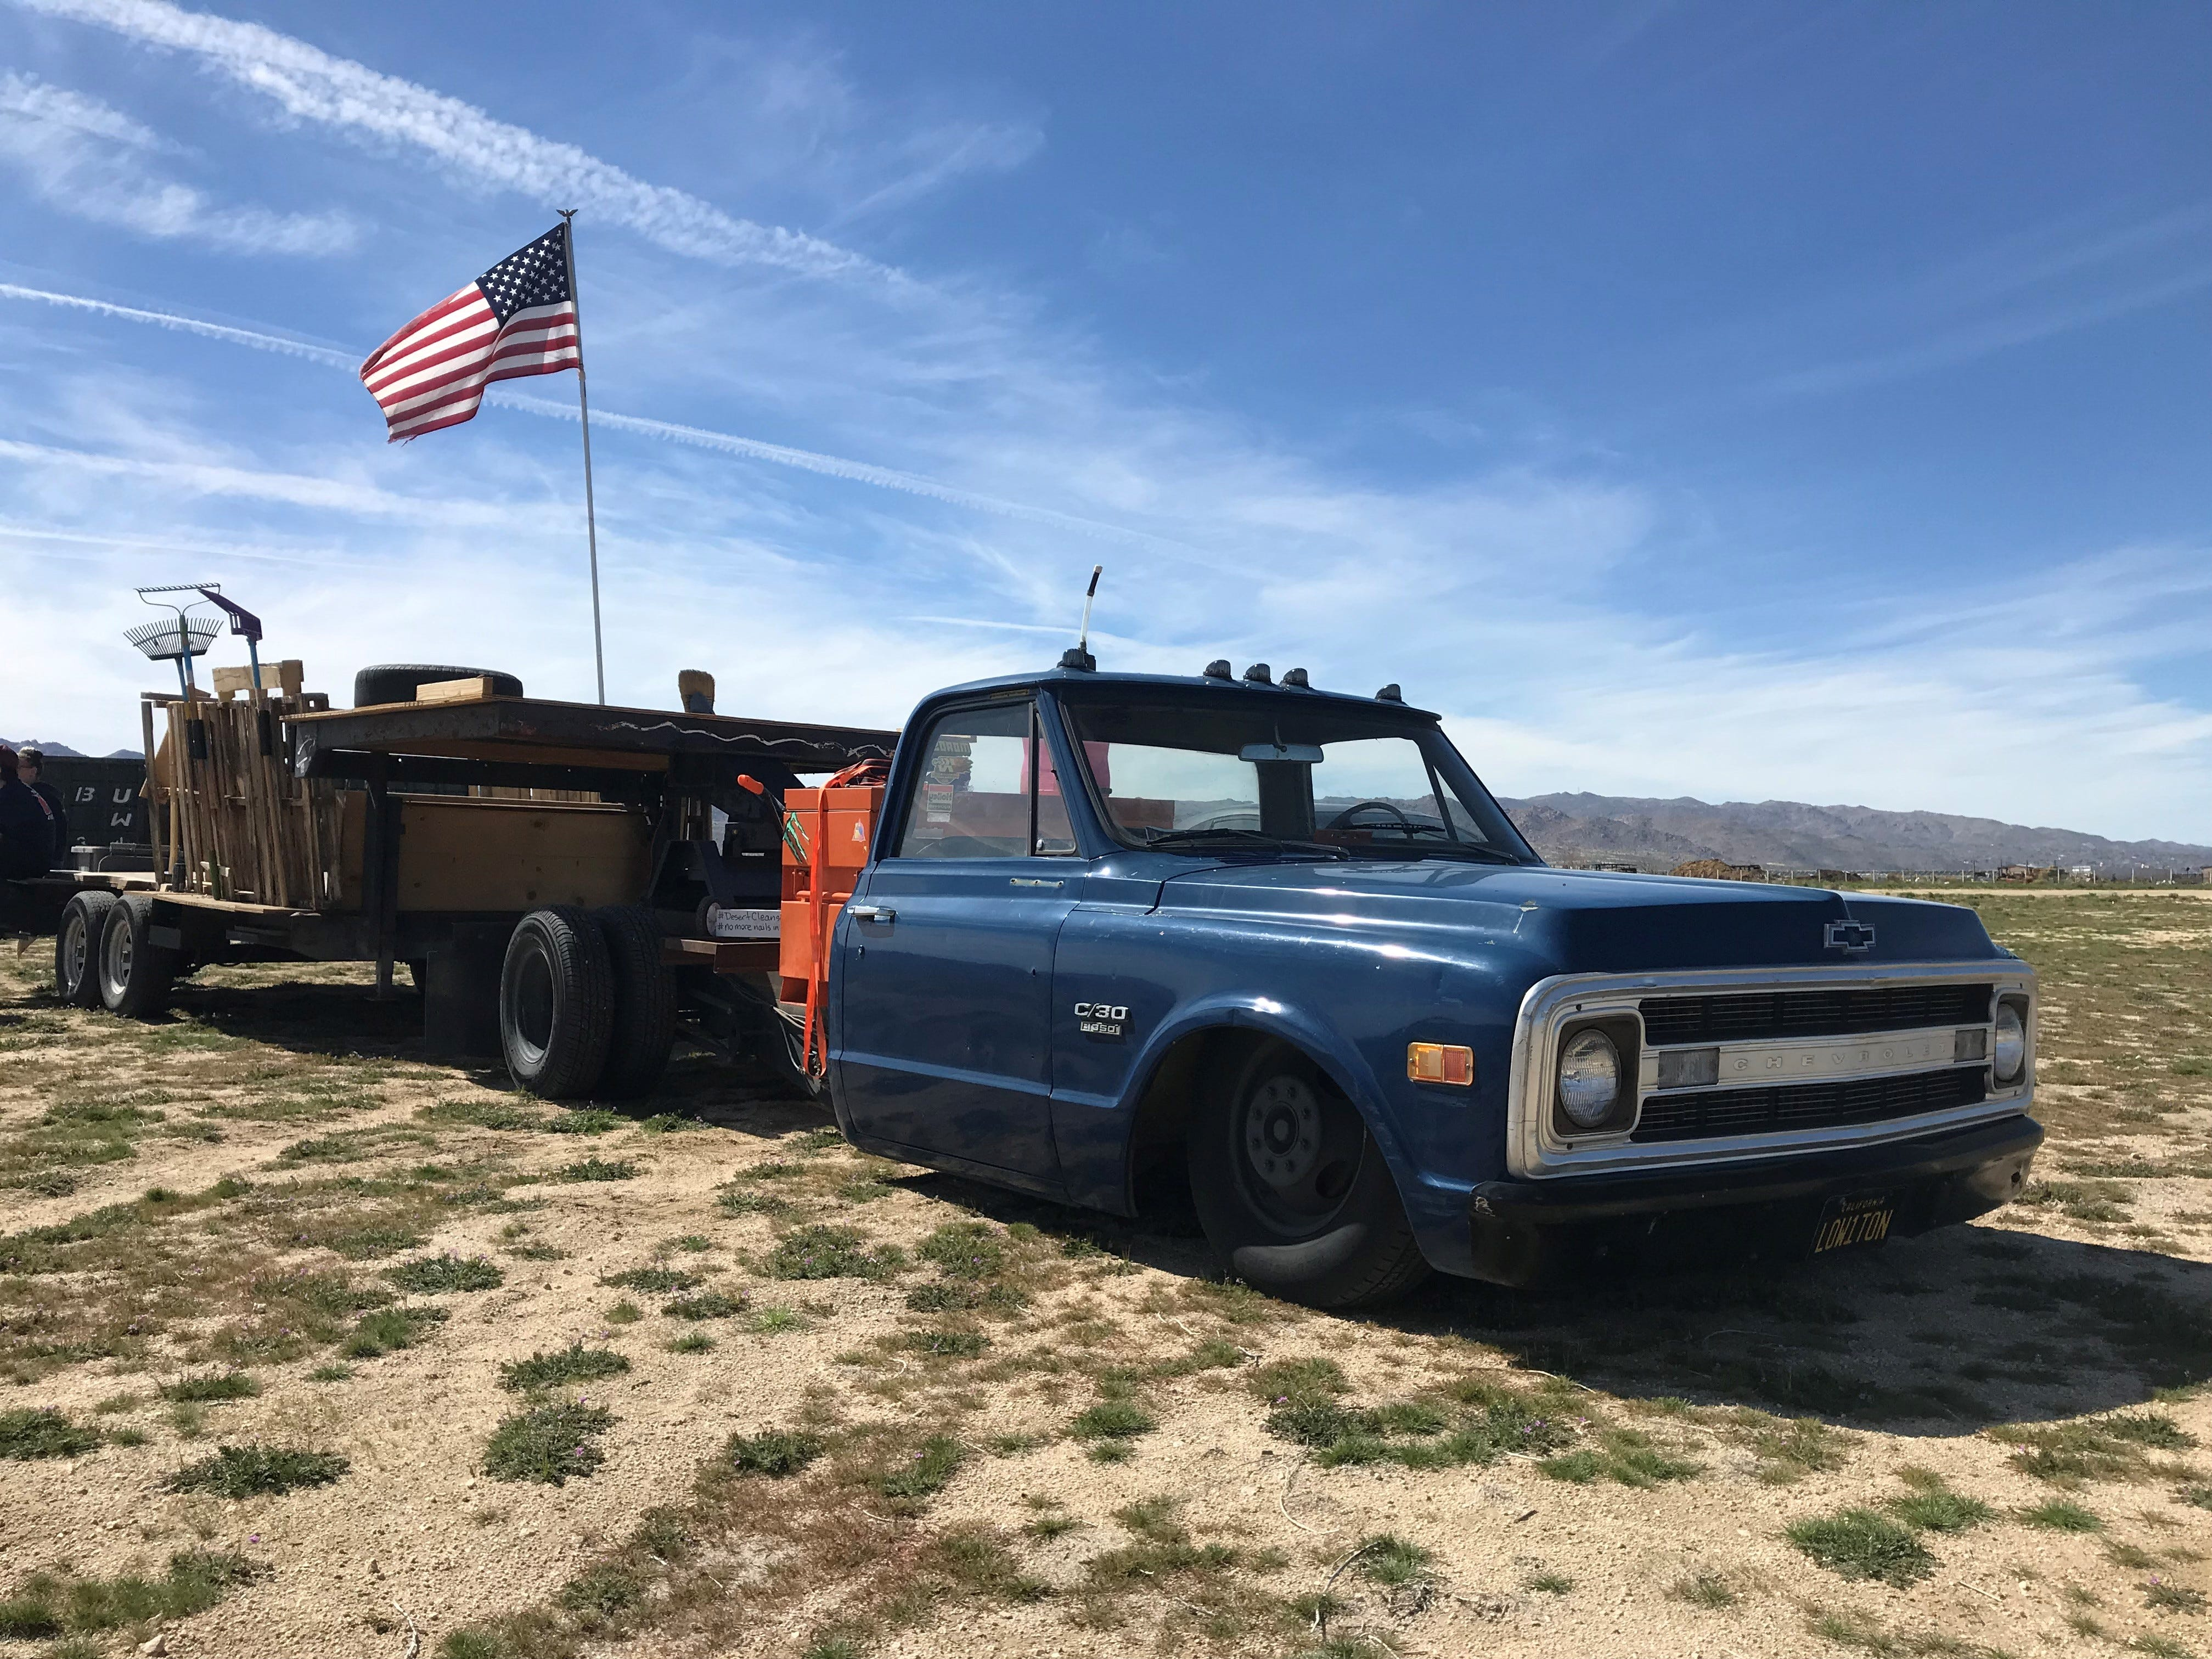 Joshua Tree residents Colin and Jillian Sauter use a 1970 low-rider pickup truck to haul trash they've picked up in the high desert.